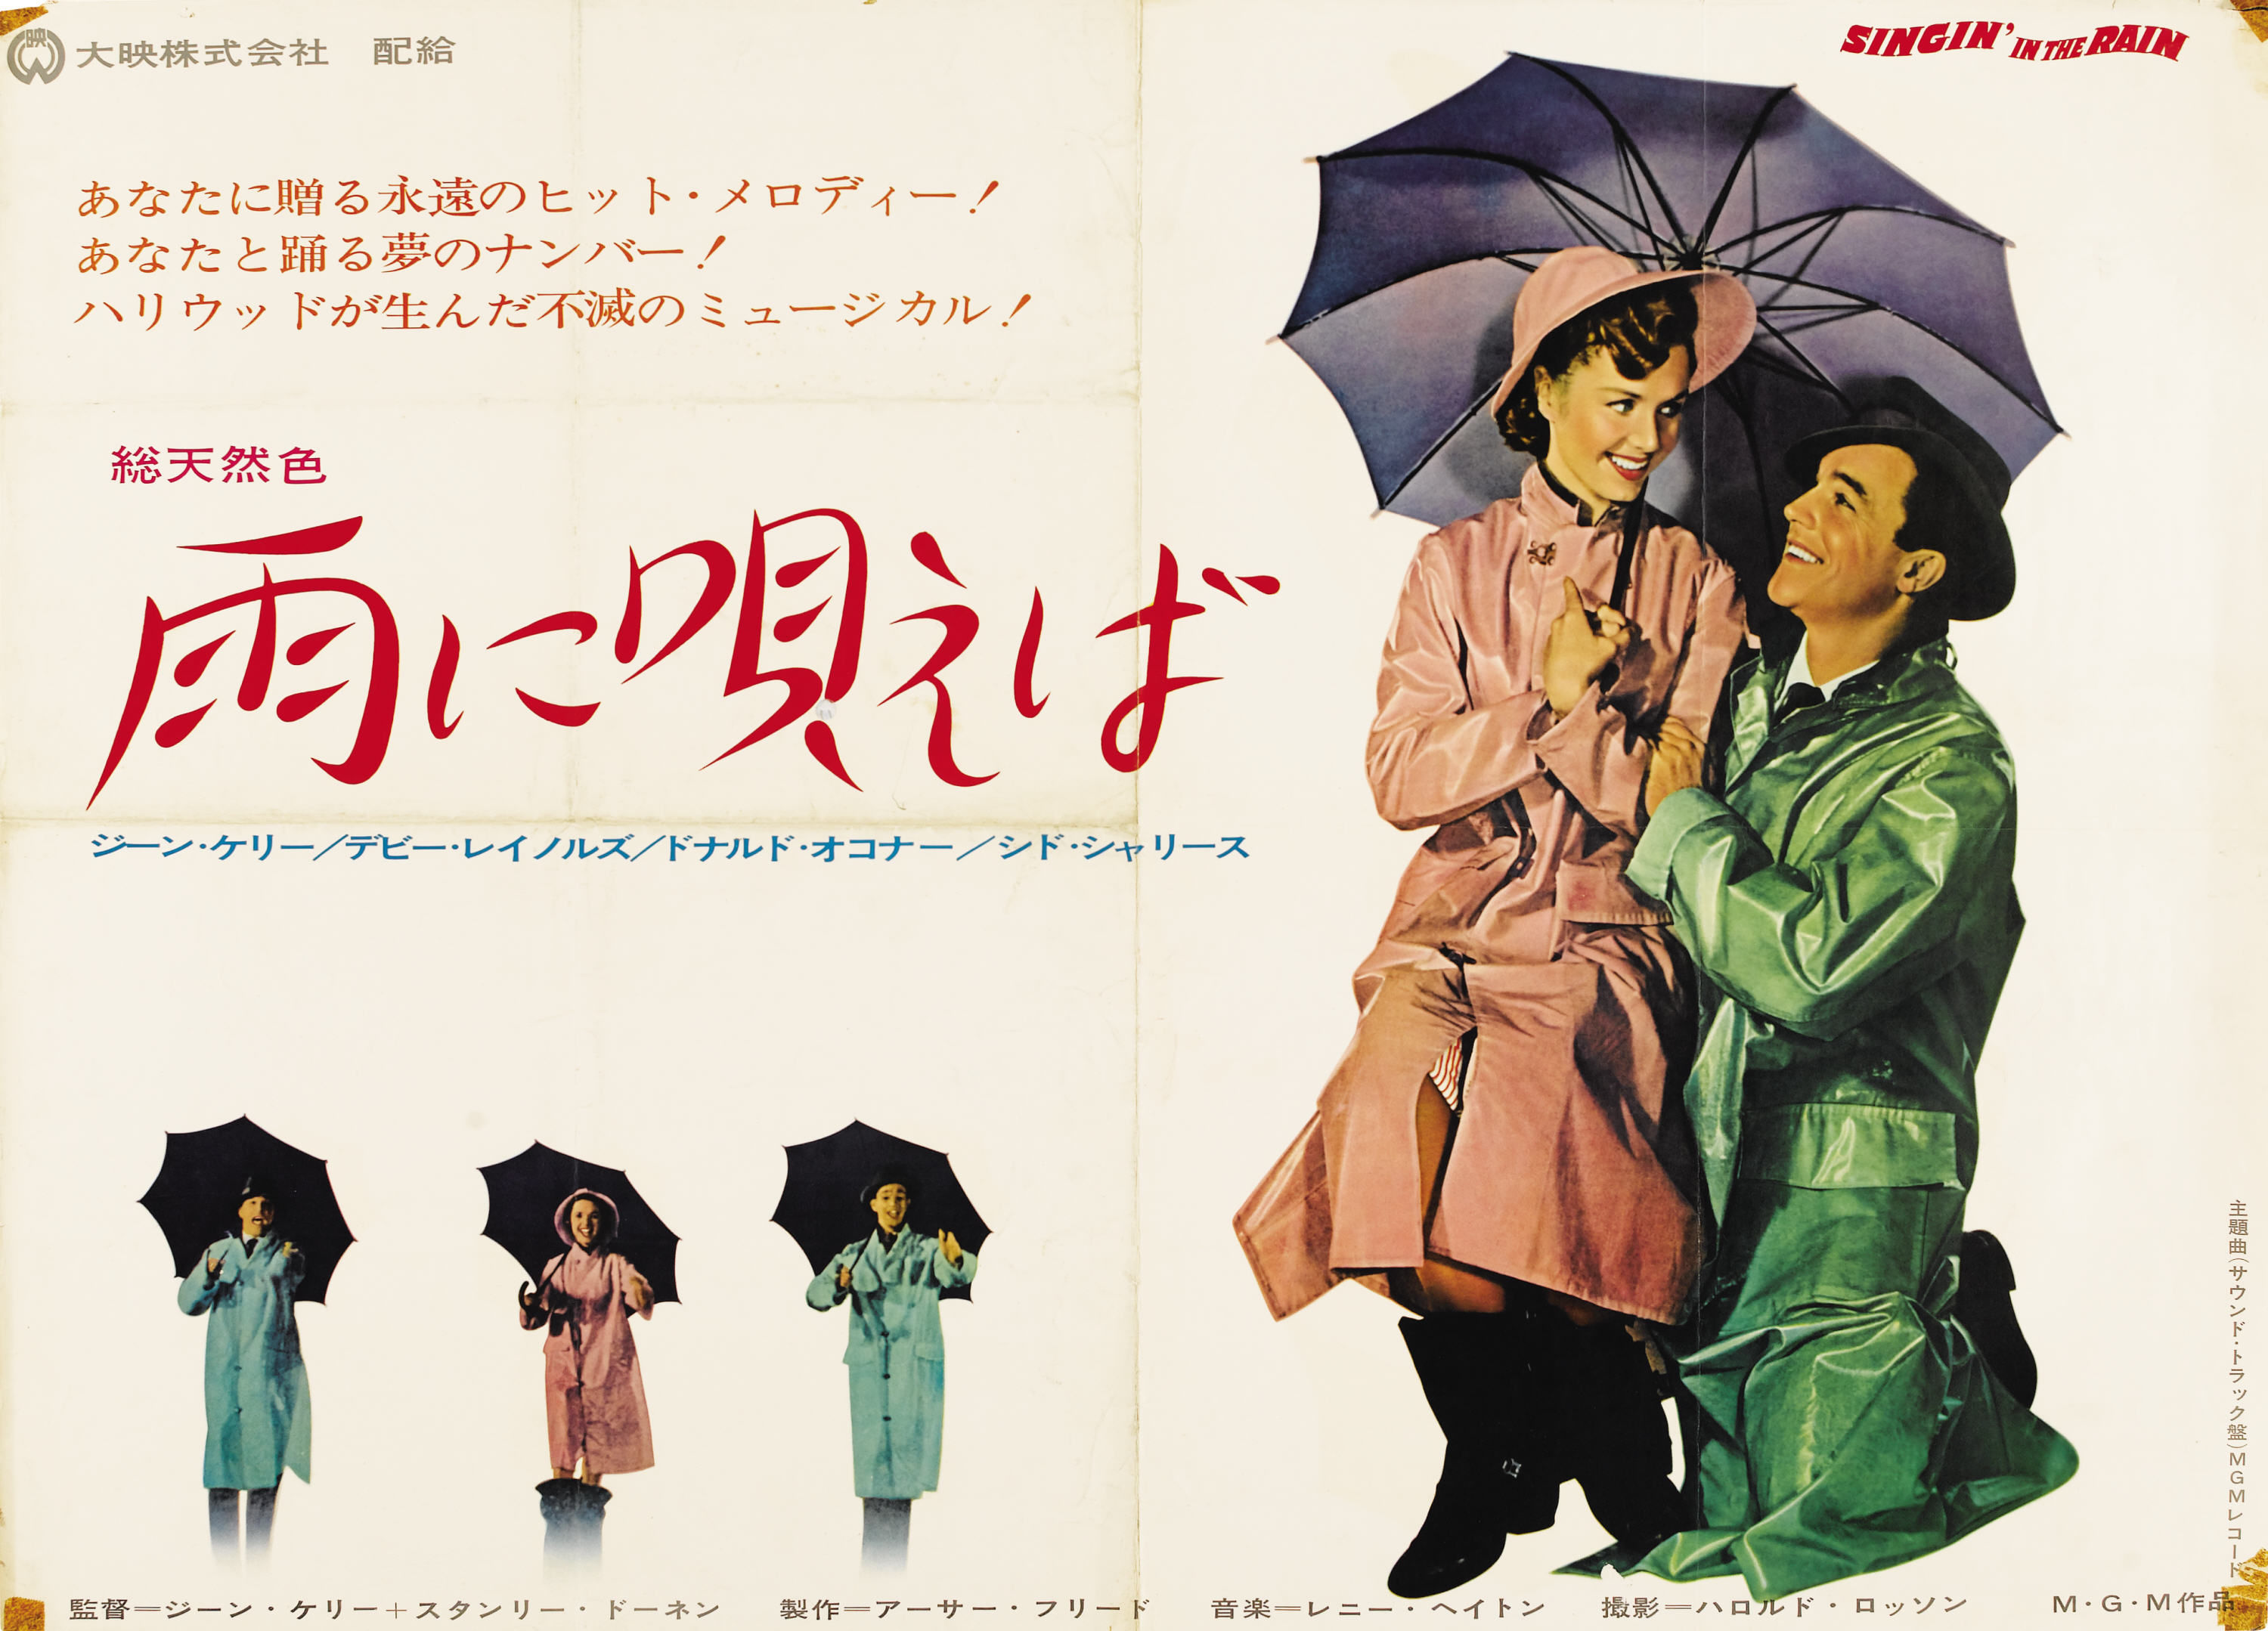 https://upload.wikimedia.org/wikipedia/commons/8/8f/Singinintherain-japan-poster.jpg